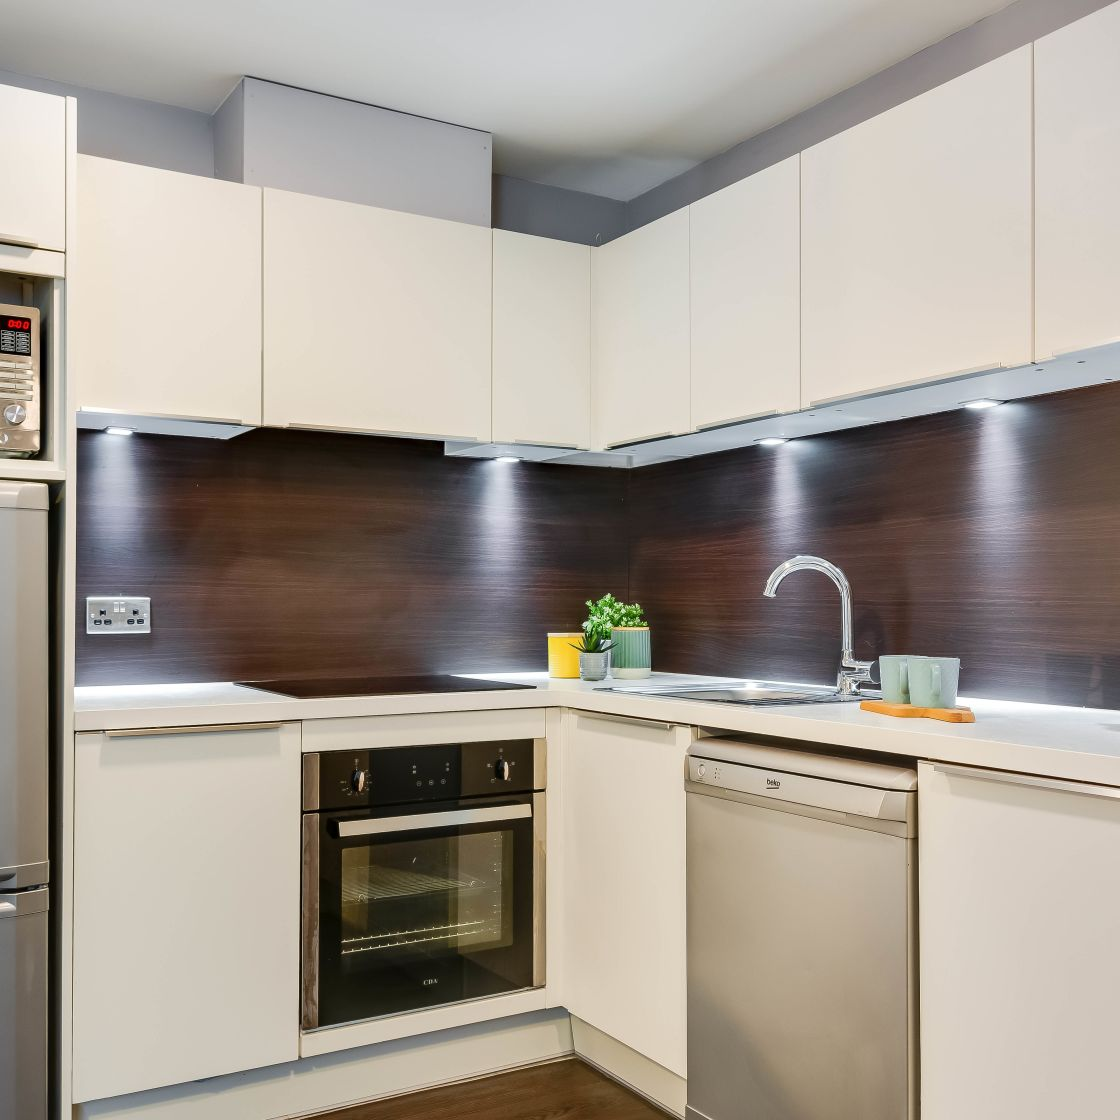 Grande Student Apartment in Leeds. Kitchen with Sink, Oven and Fridge Freezer. IconInc, The Edge,